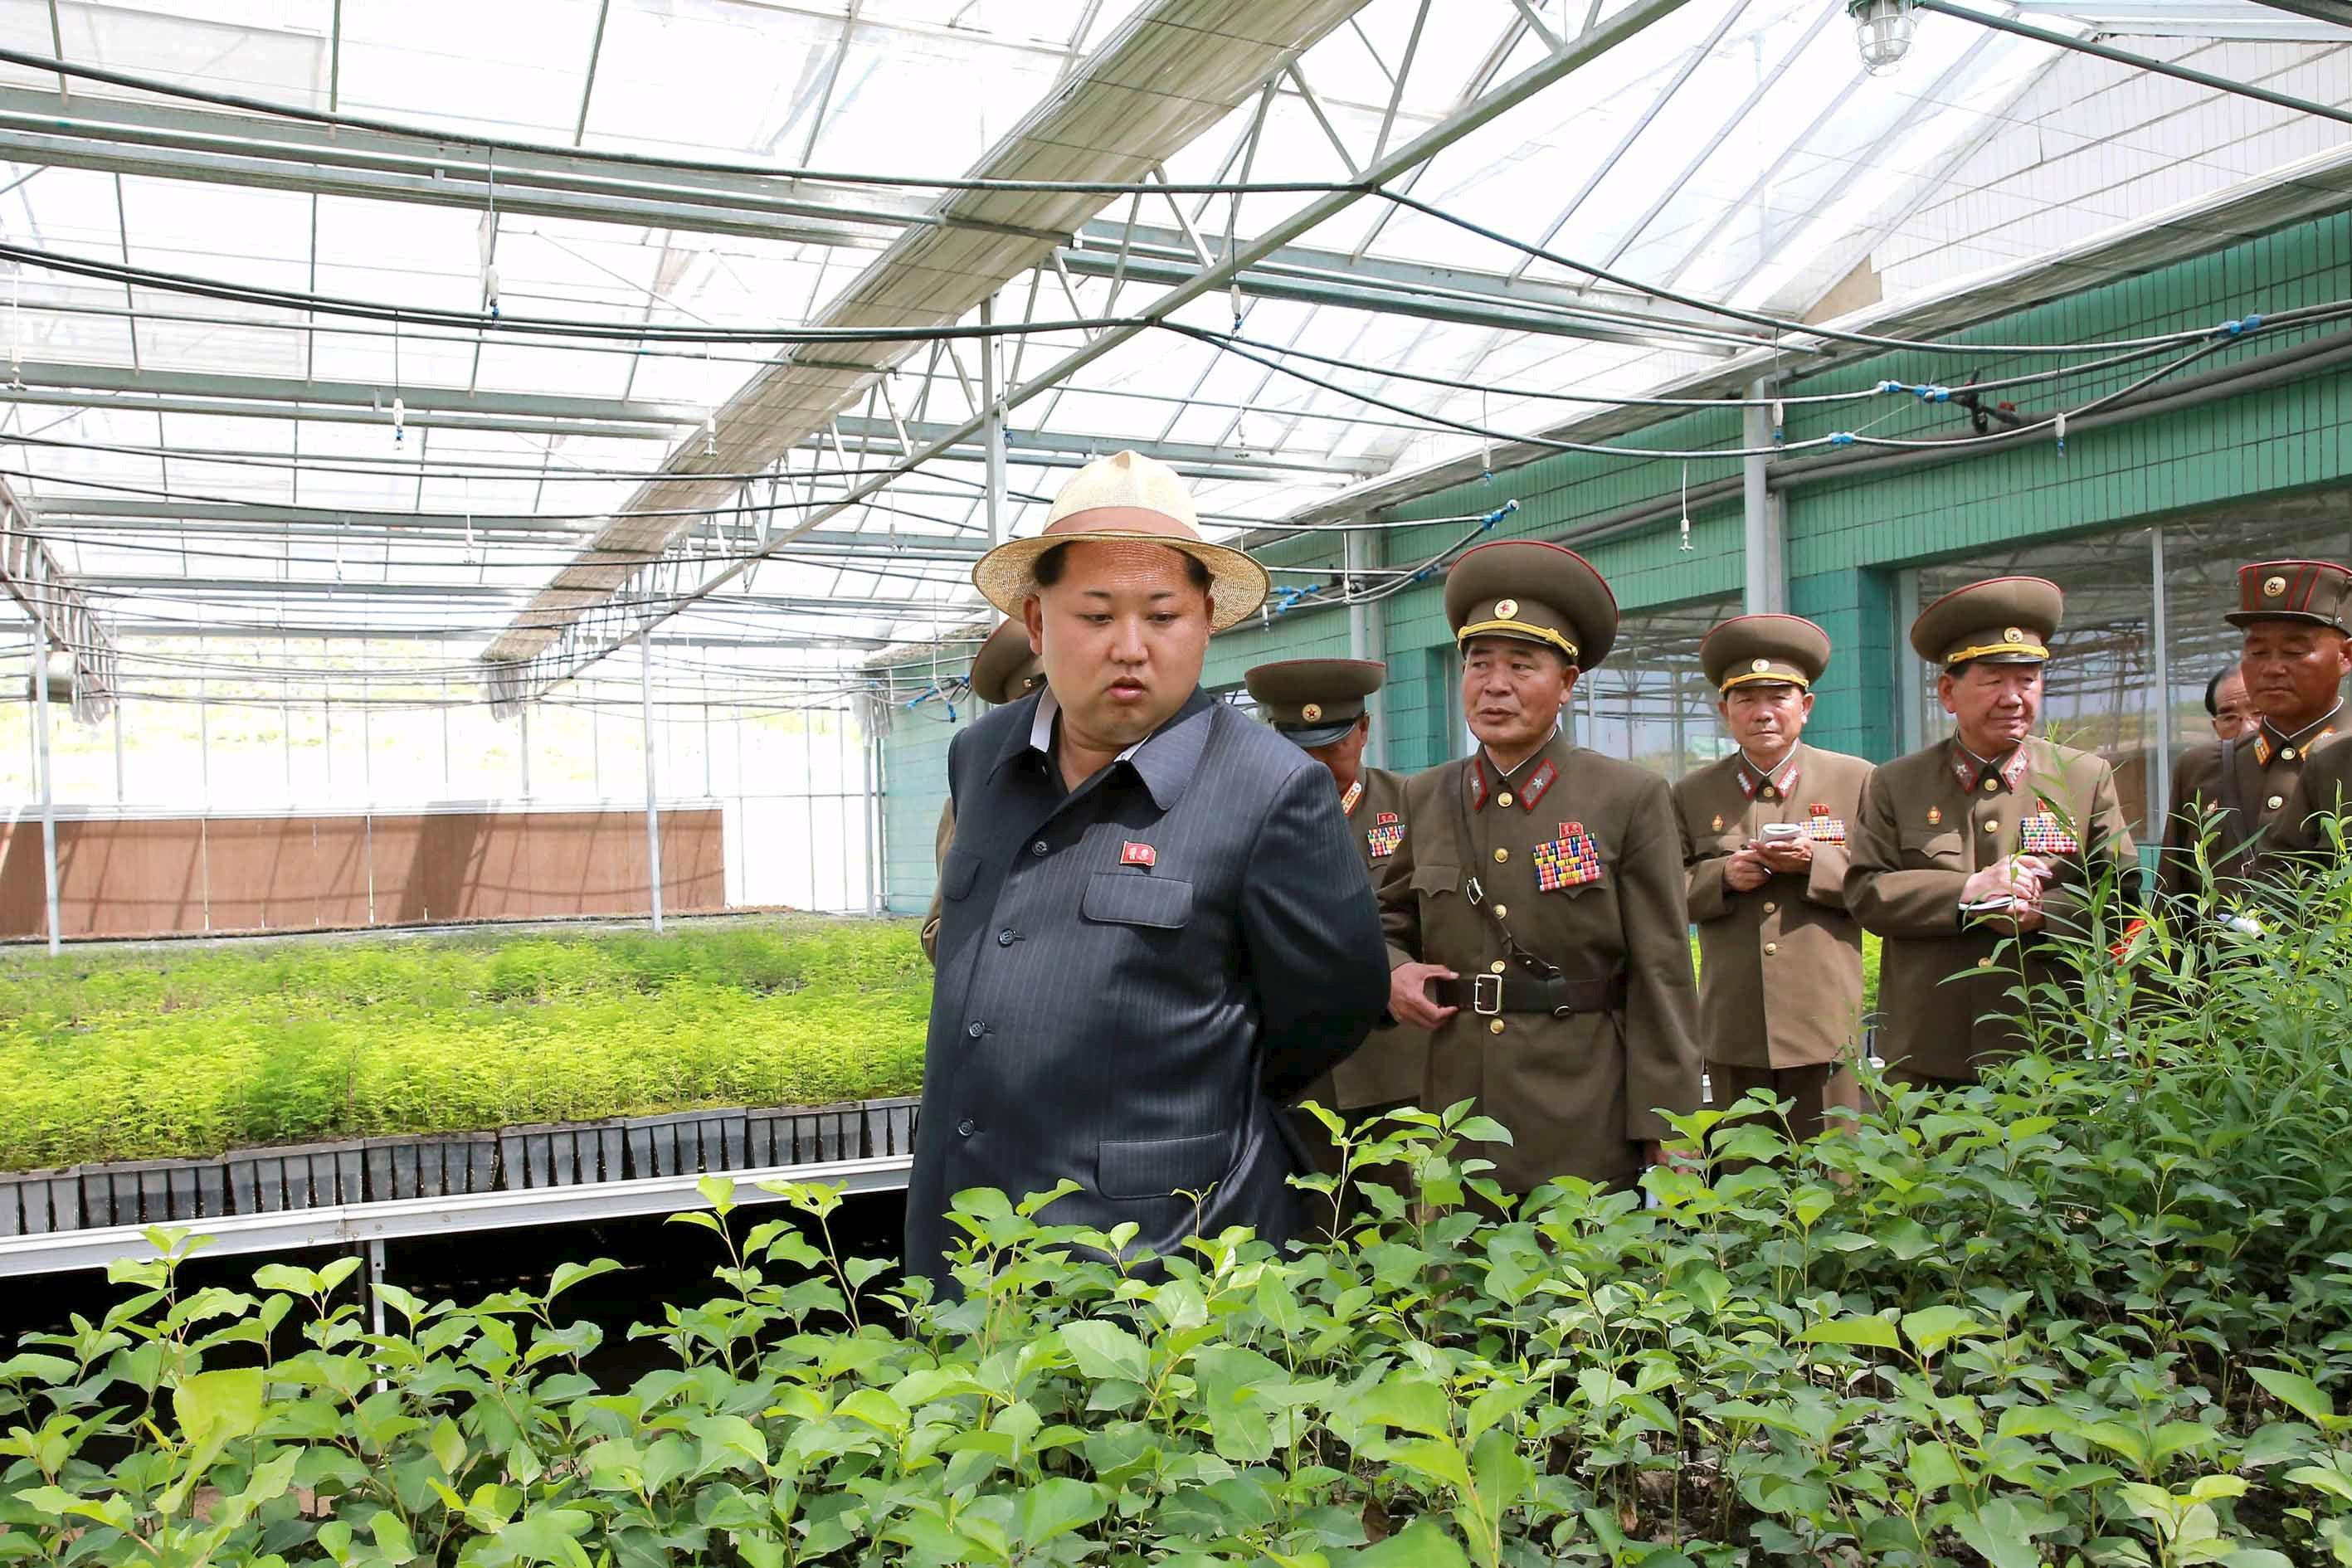 North Korean leader Kim Jong-un gives field guidance at a new tree nursery run by the military in this undated photo released by North Korea's Korean Central News Agency (KCNA) in Pyongyang May 29, 2015. REUTERS/KCNA SOUTH KOREA OUT. NO COMMERCIAL OR EDITORIAL SALES IN SOUTH KOREA THIS IMAGE HAS BEEN SUPPLIED BY A THIRD PARTY. IT IS DISTRIBUTED, EXACTLY AS RECEIVED BY REUTERS, AS A SERVICE TO CLIENTS NO THIRD PARTY SALES. NOT FOR USE BY REUTERS THIRD PARTY DISTRIBUTORS